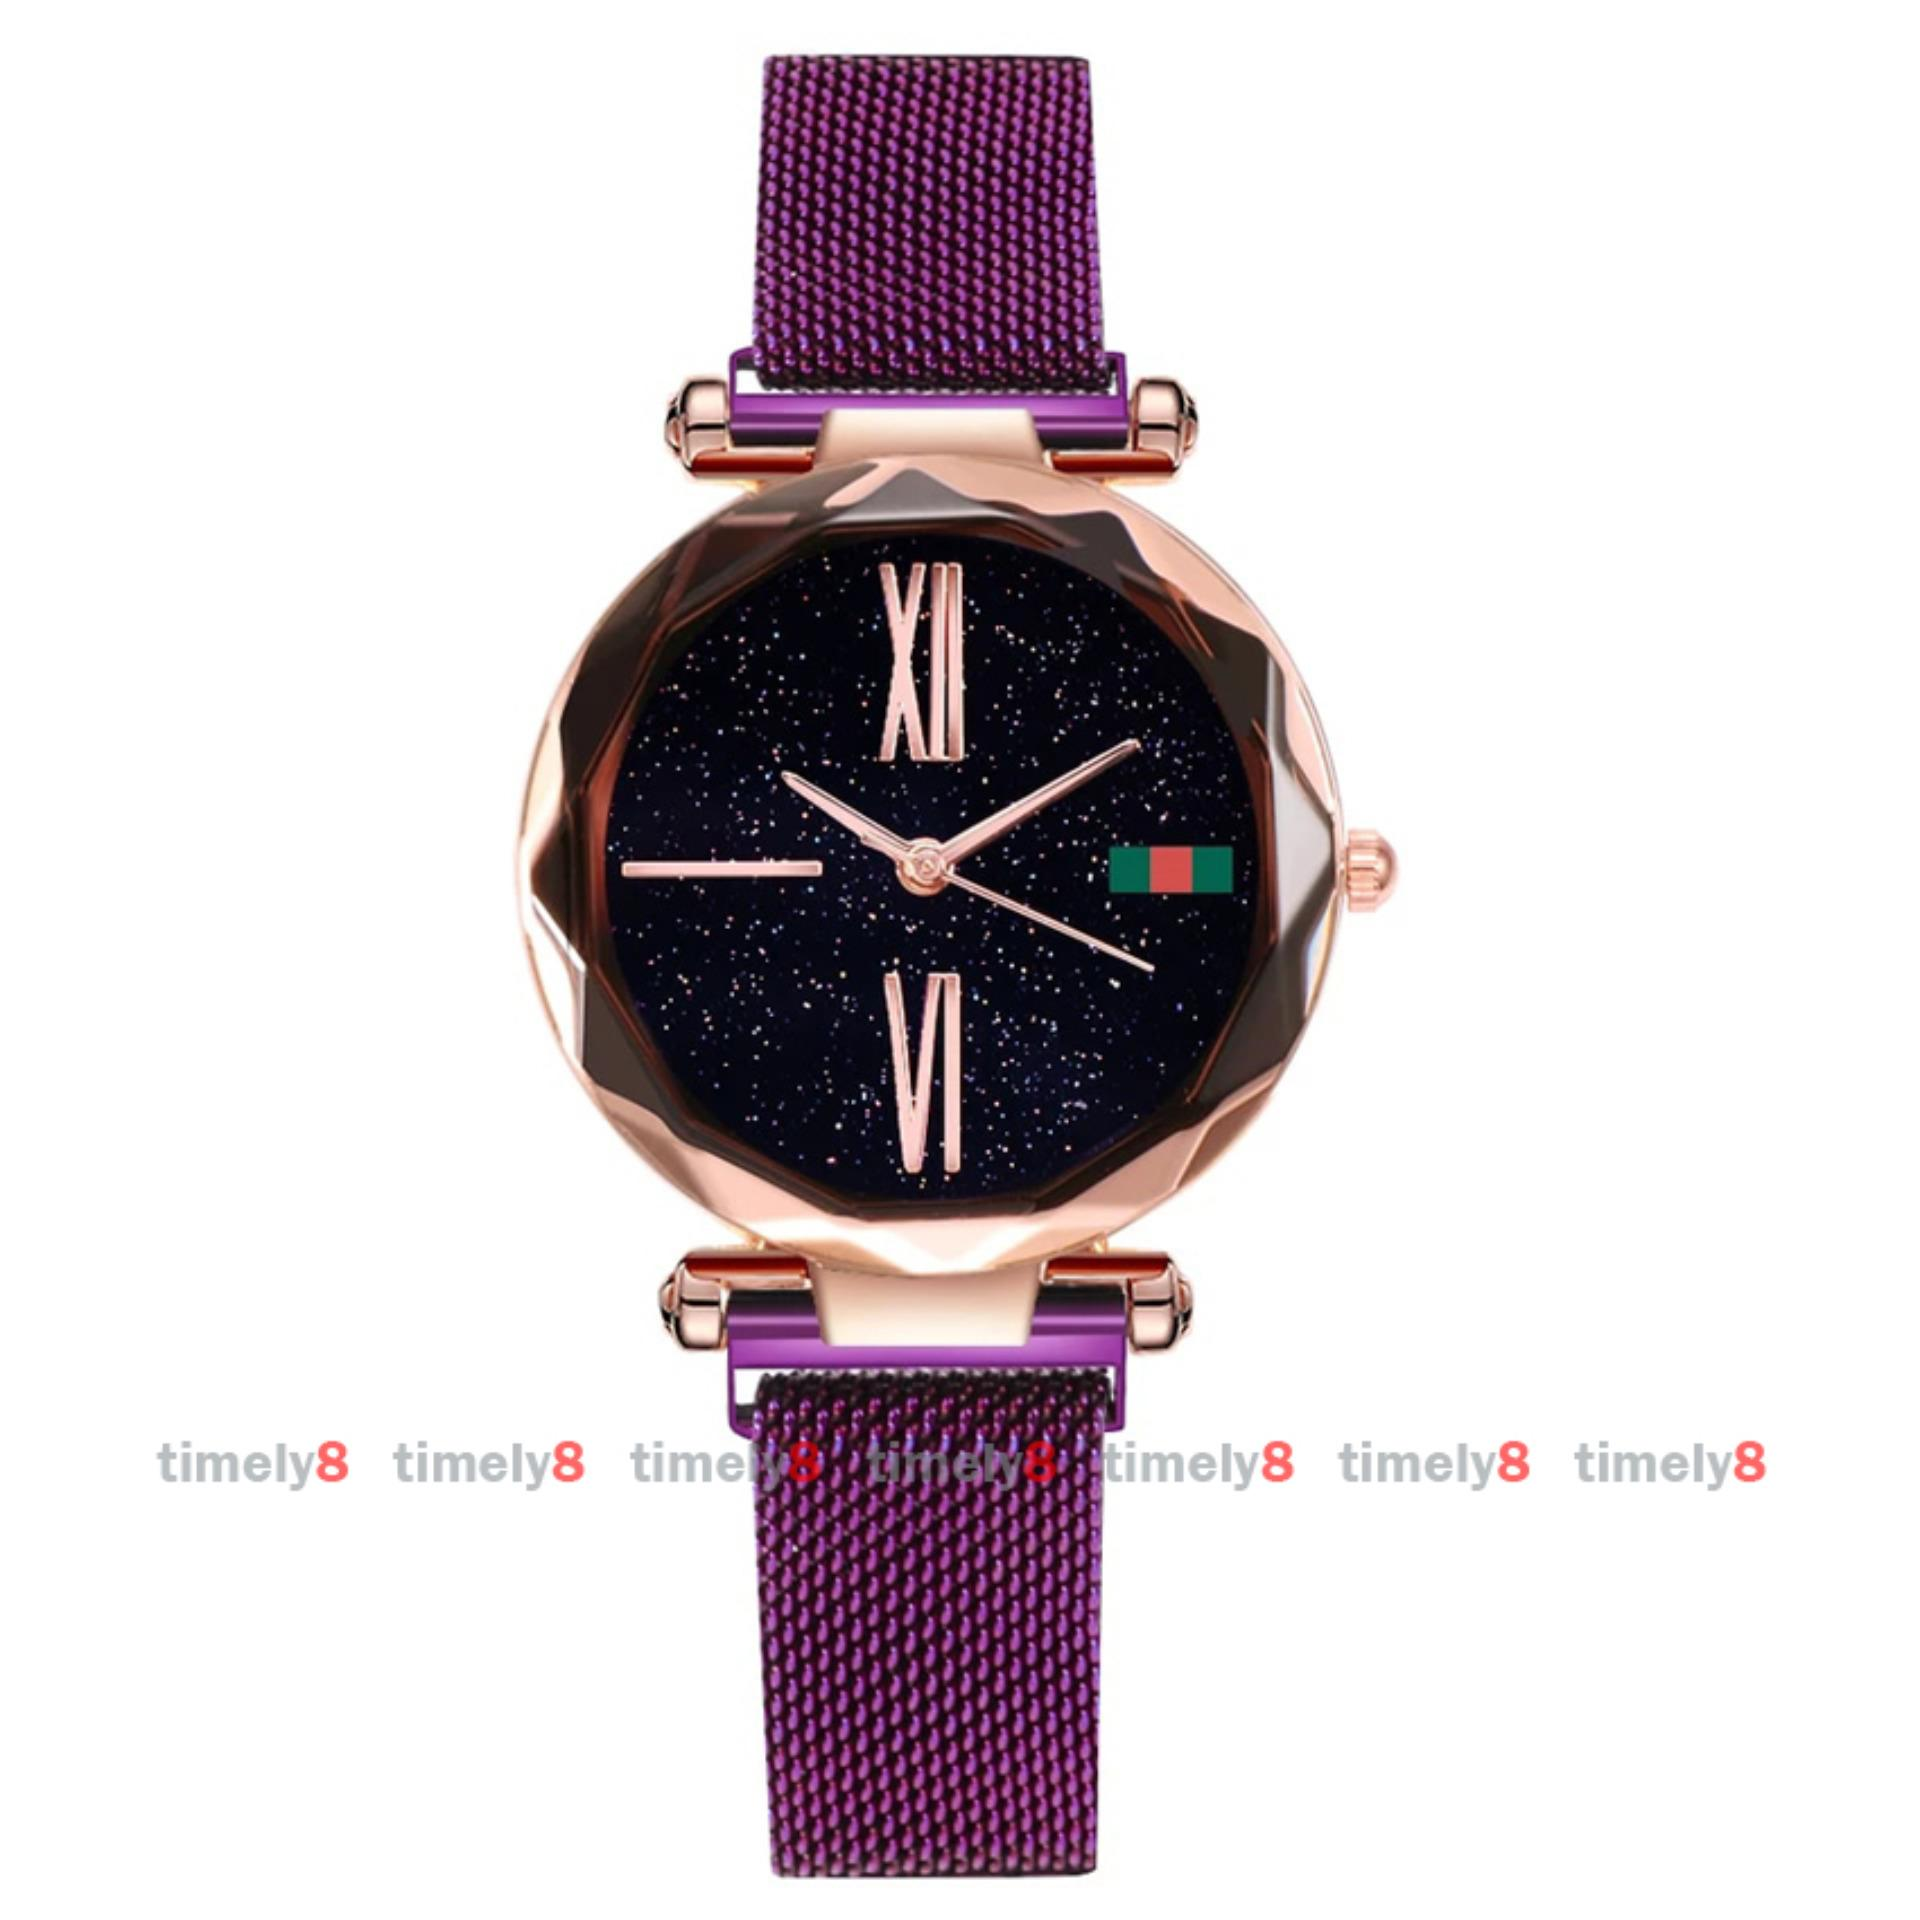 Timely - Women Luxury Magnet Buckle Watch MG909 - Jam Tangan Fashion - Jam  Tangan Magnet 98fcf2b32a